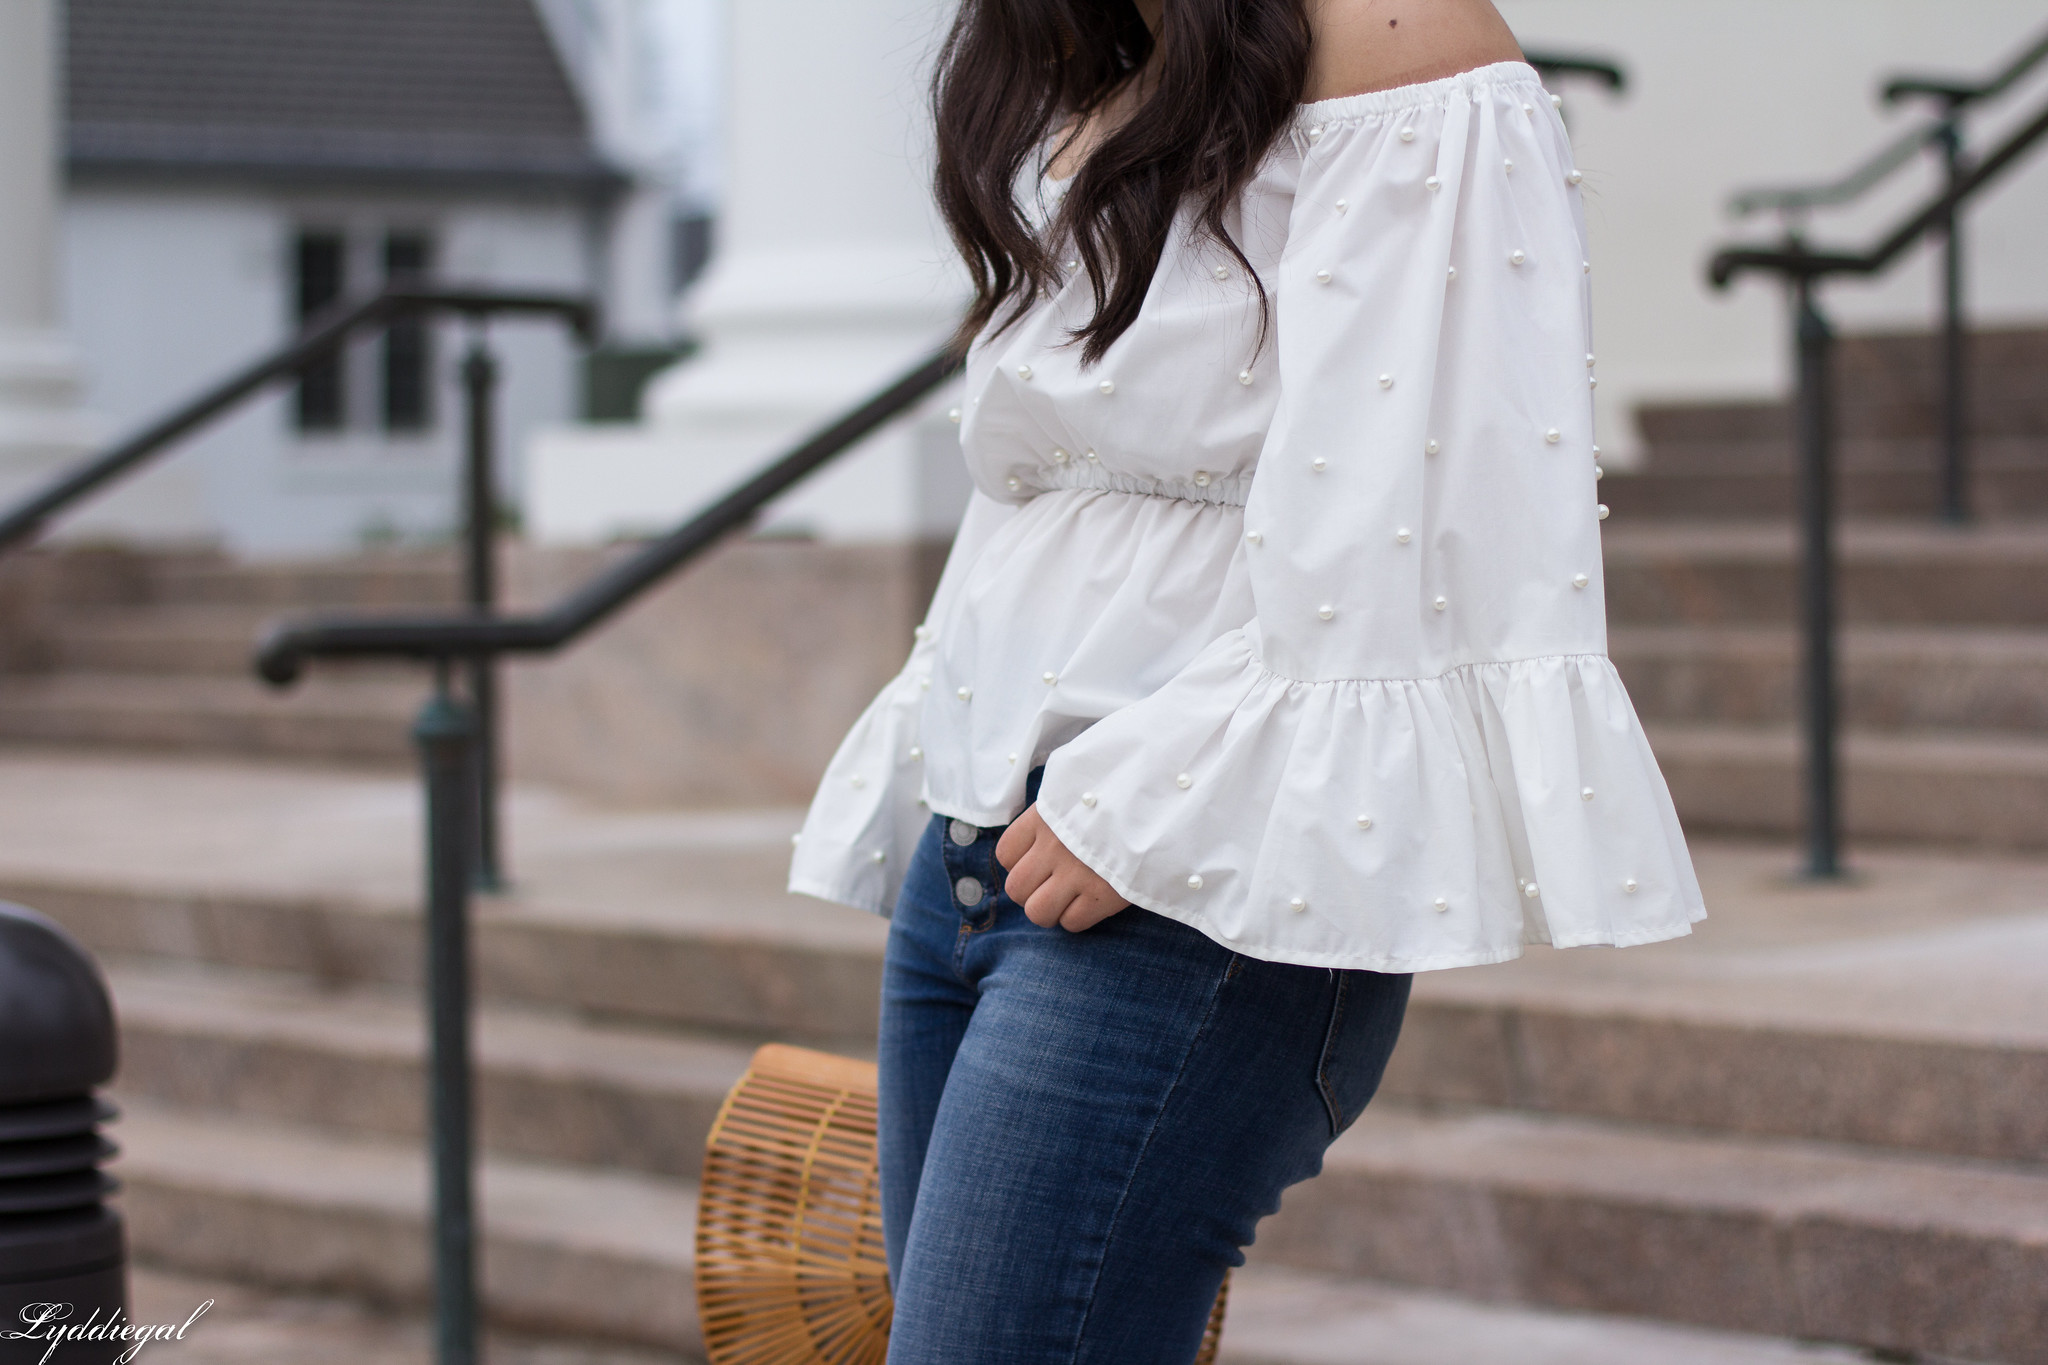 off the shoulder pearl embellished blouse, distressed denim, bamboo purse-10.jpg